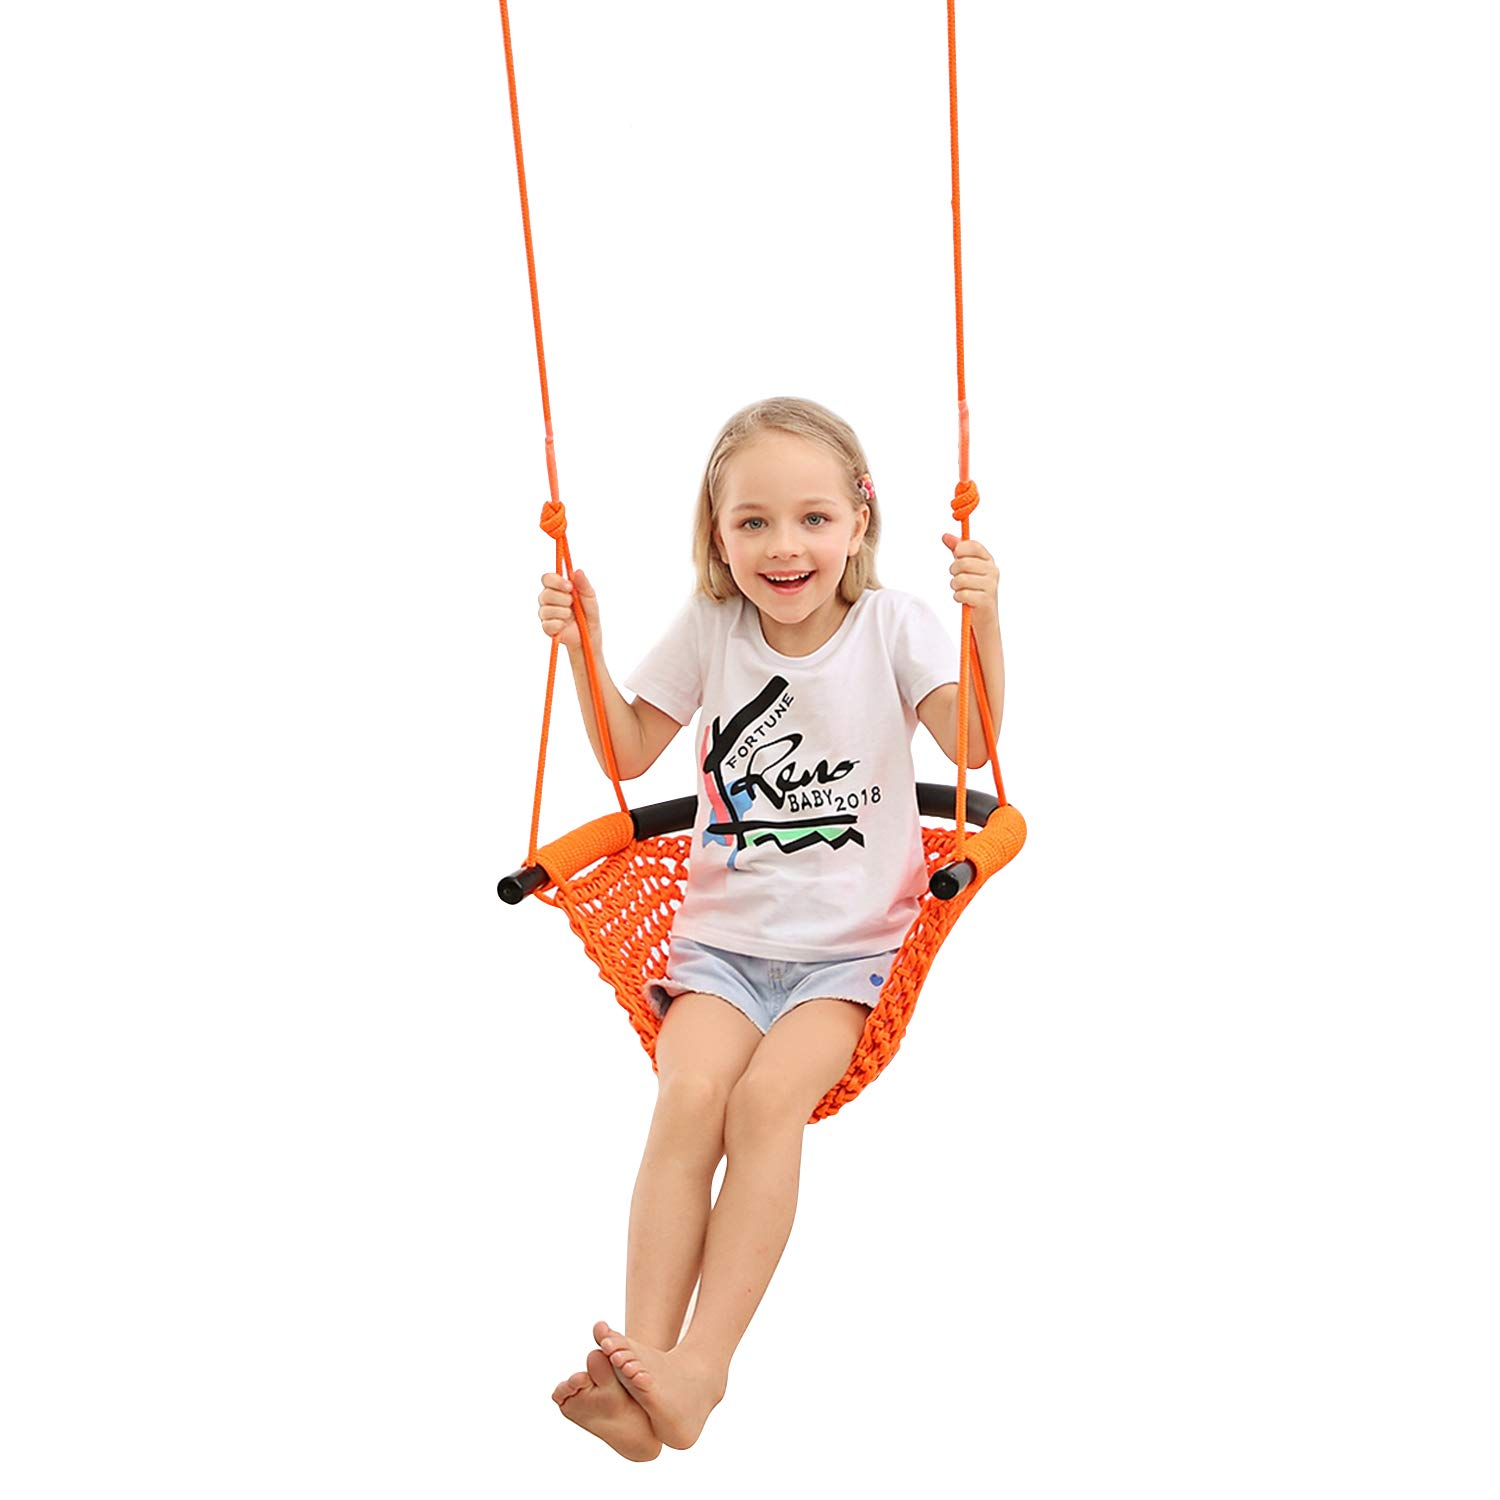 JKsmart Swing Seat for Kids Heavy Duty Rope Play Secure Children Swing Set,Perfect for Indoor,Outdoor,Playground,Home,Tree,with Snap Hooks and Swing Straps,440 lbs Capacity,Orange(Patent Pending) by JKsmart (Image #1)